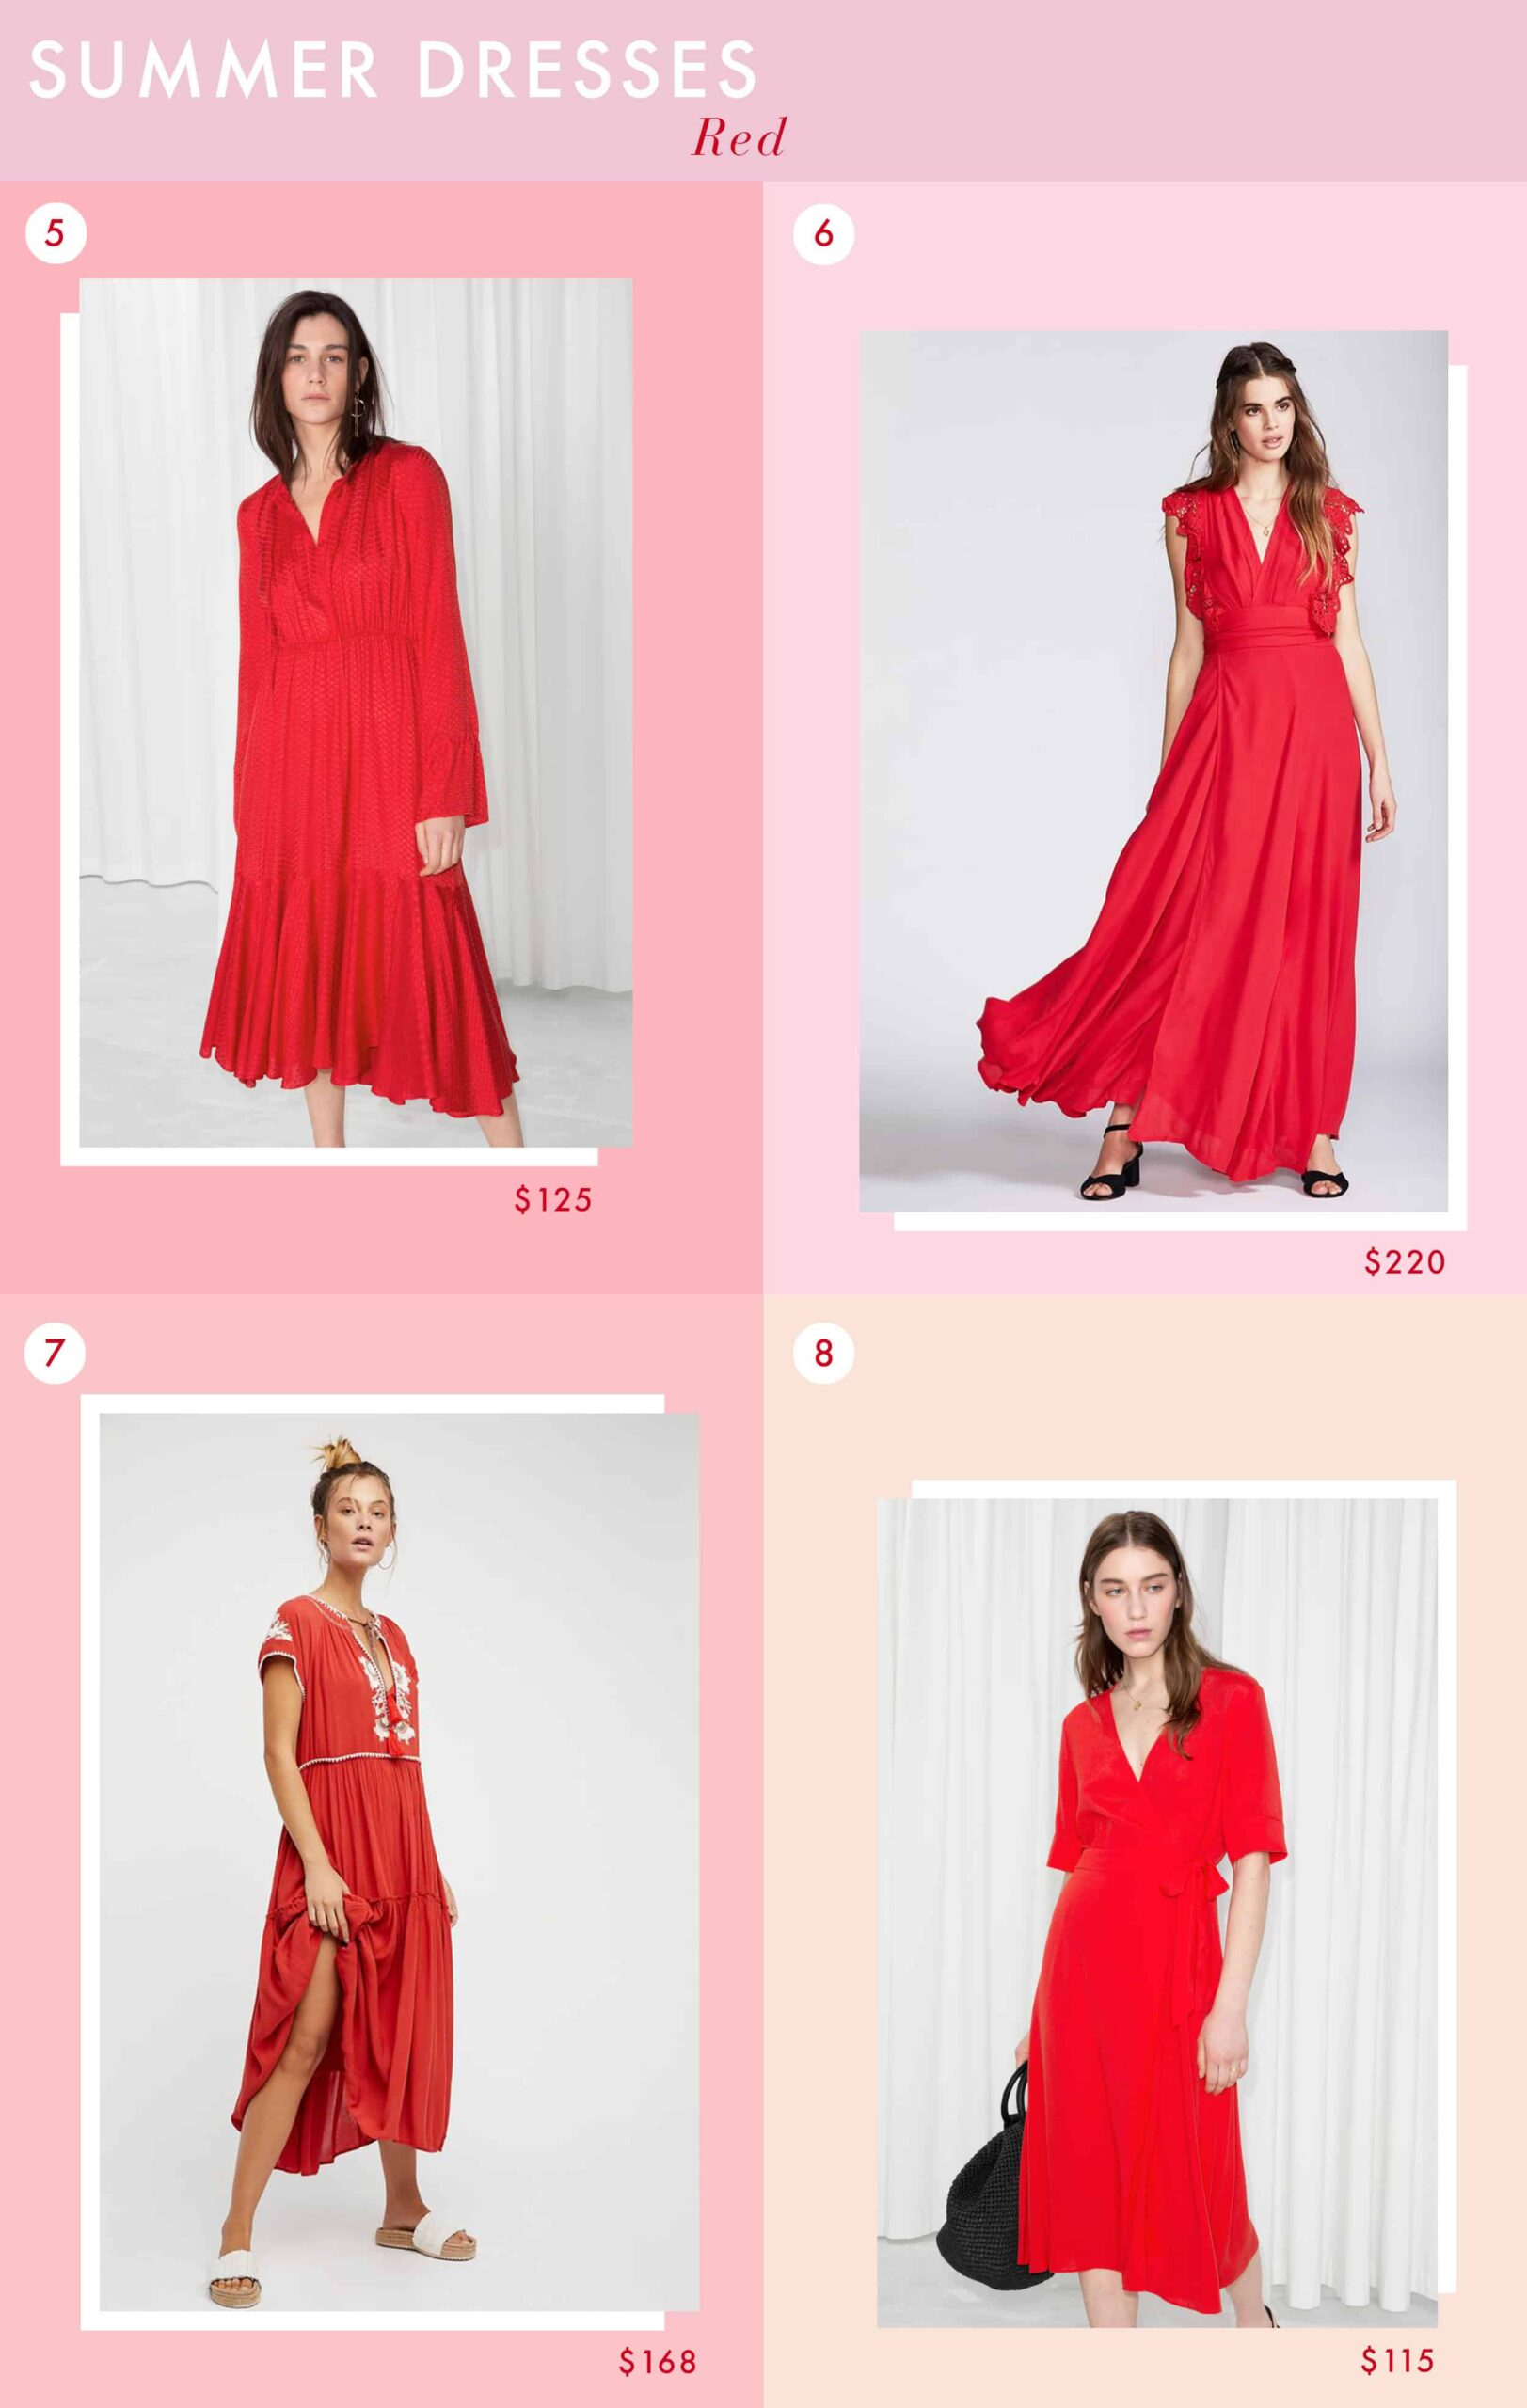 Emily Henderson Fashion Summer Dresses Solids Red